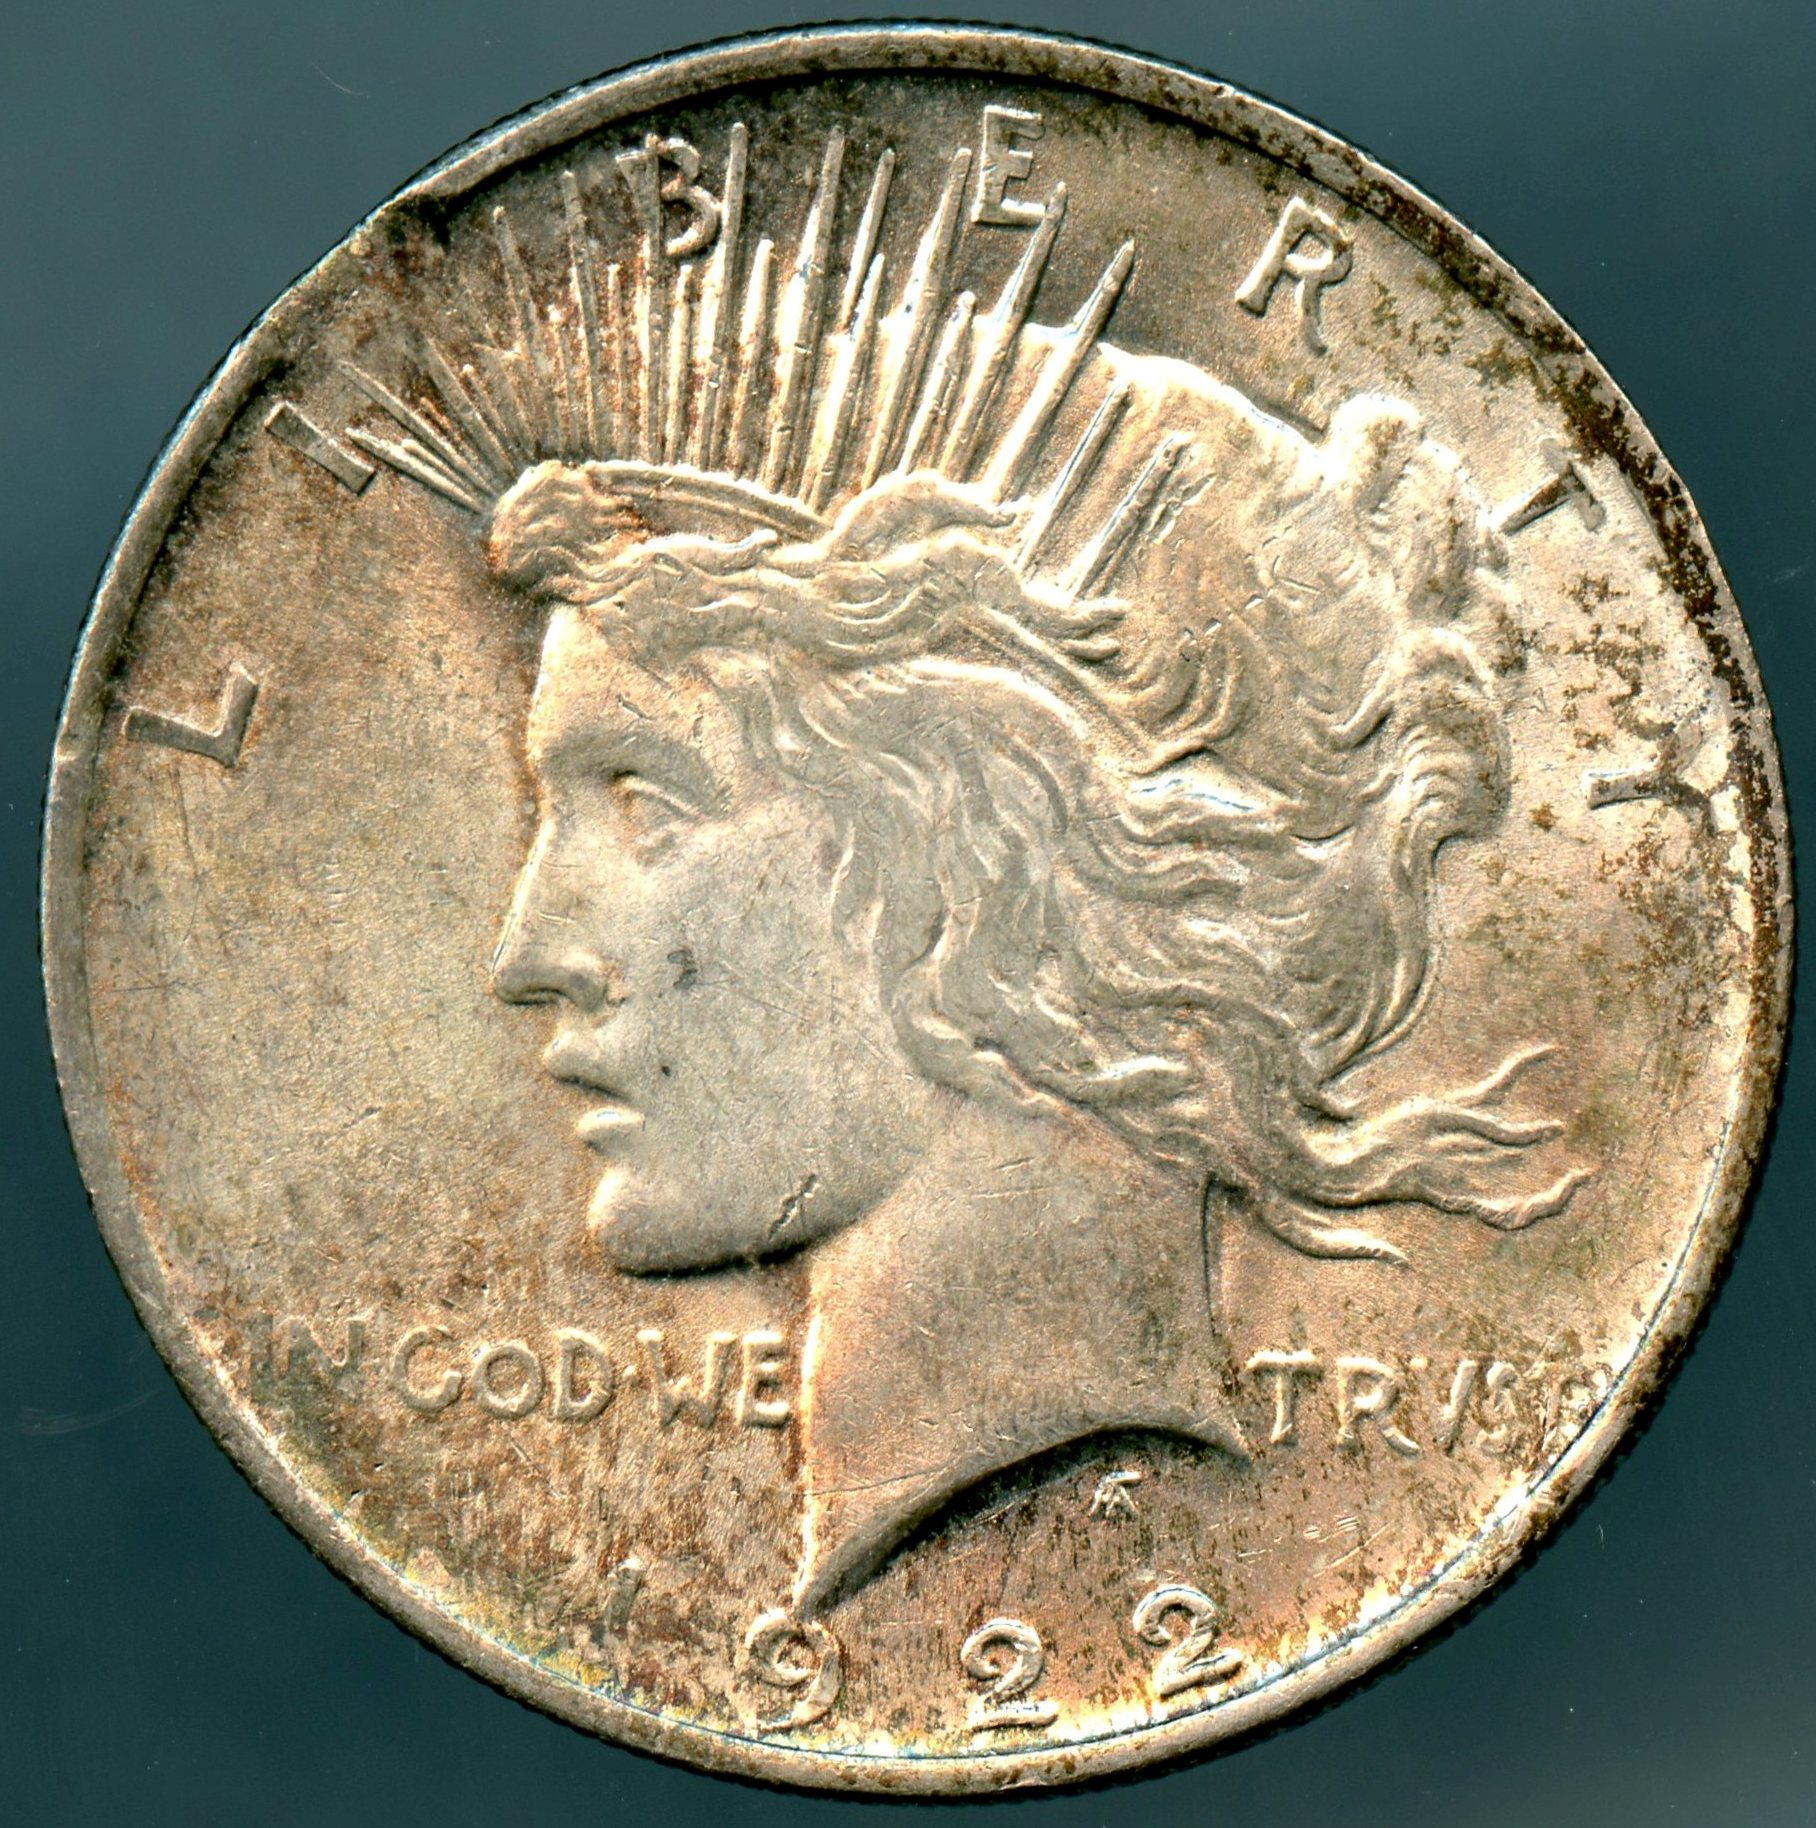 1922 Peace Dollar Clipped Planchet 11 00 Mint State